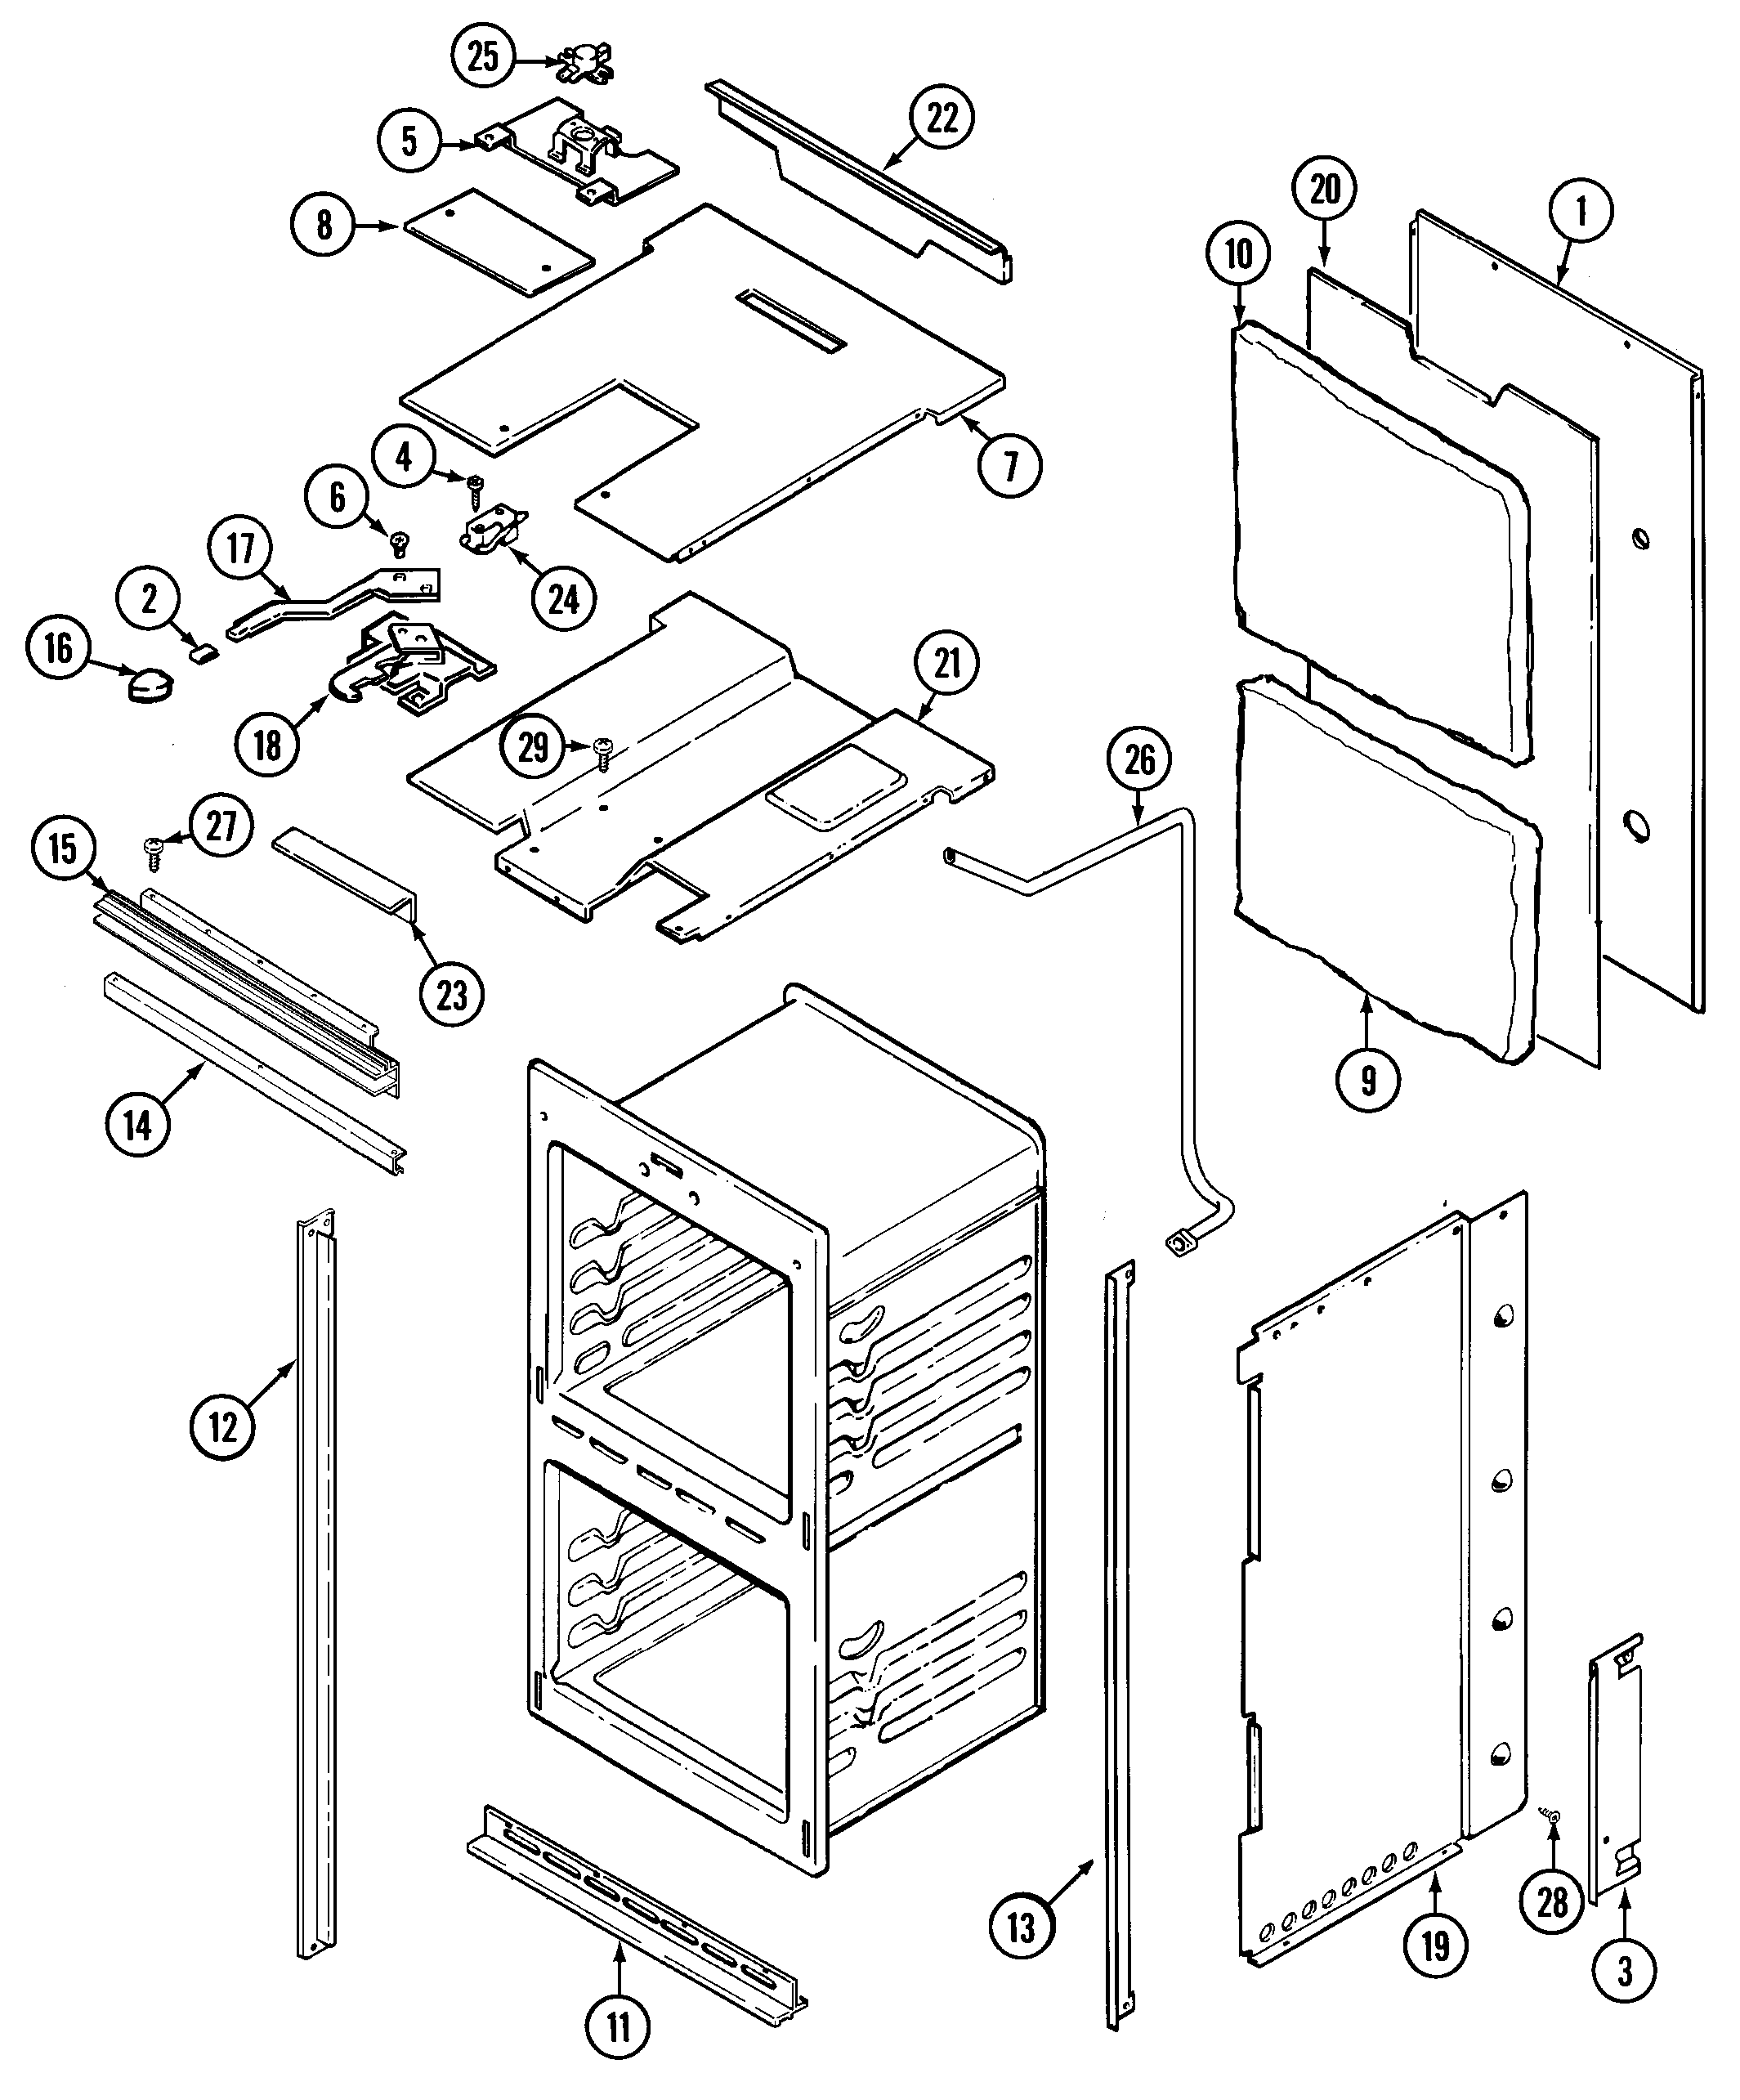 Wiring Diagram For Induction Hob Oven Hob Wiring Diagram